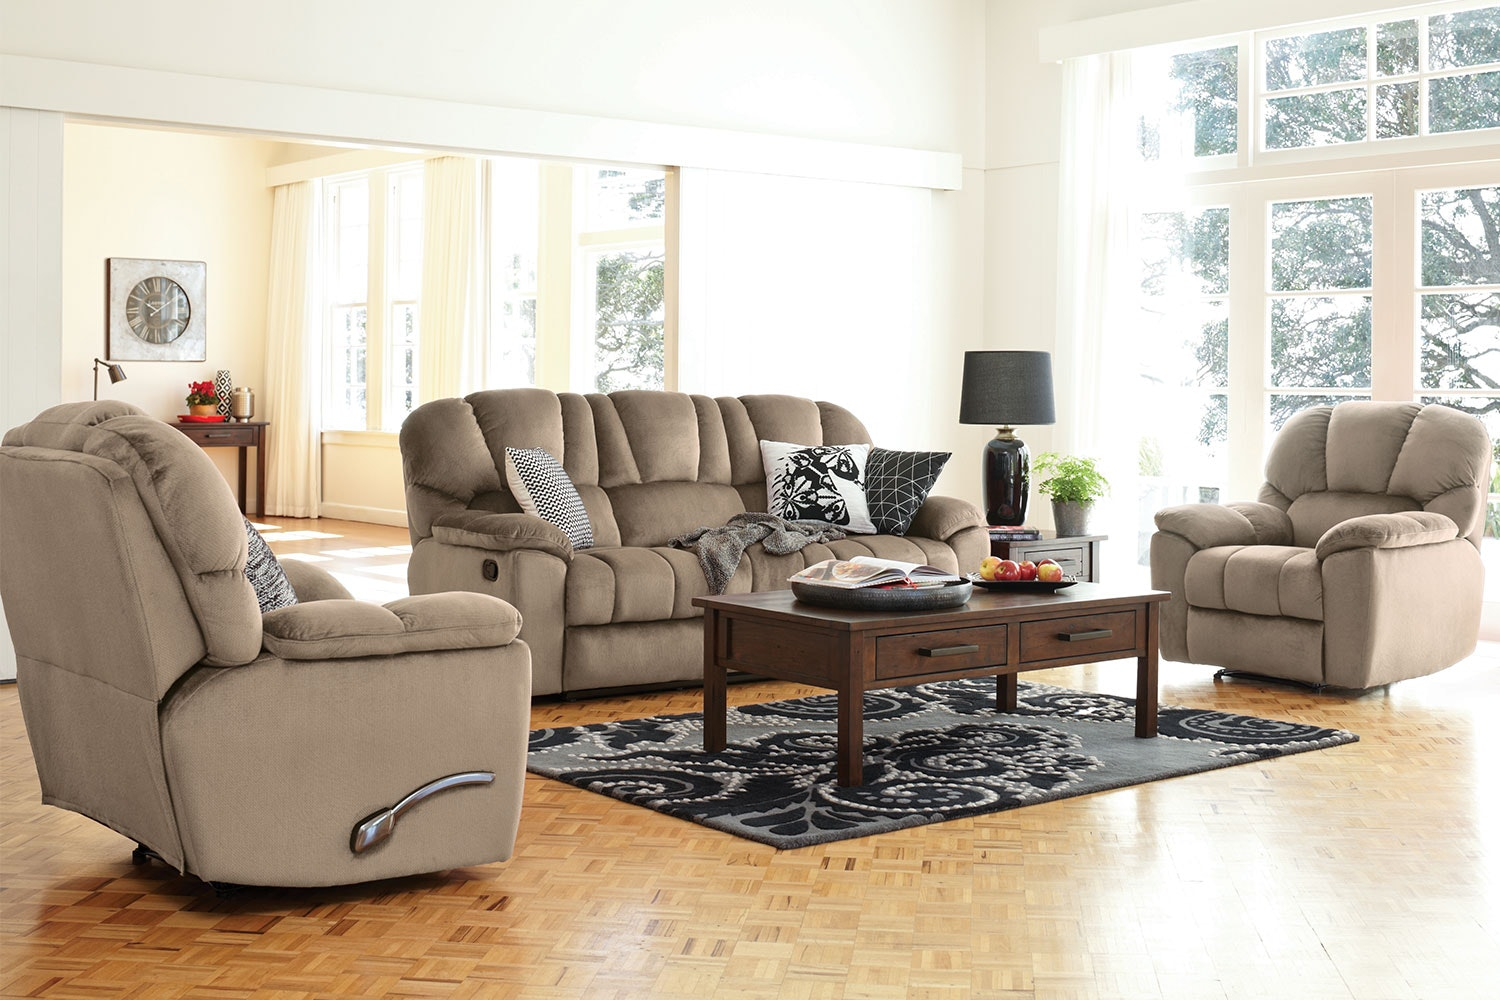 Scottland 3 Piece Fabric Recliner Lounge Suite by John Young Furniture - Latte